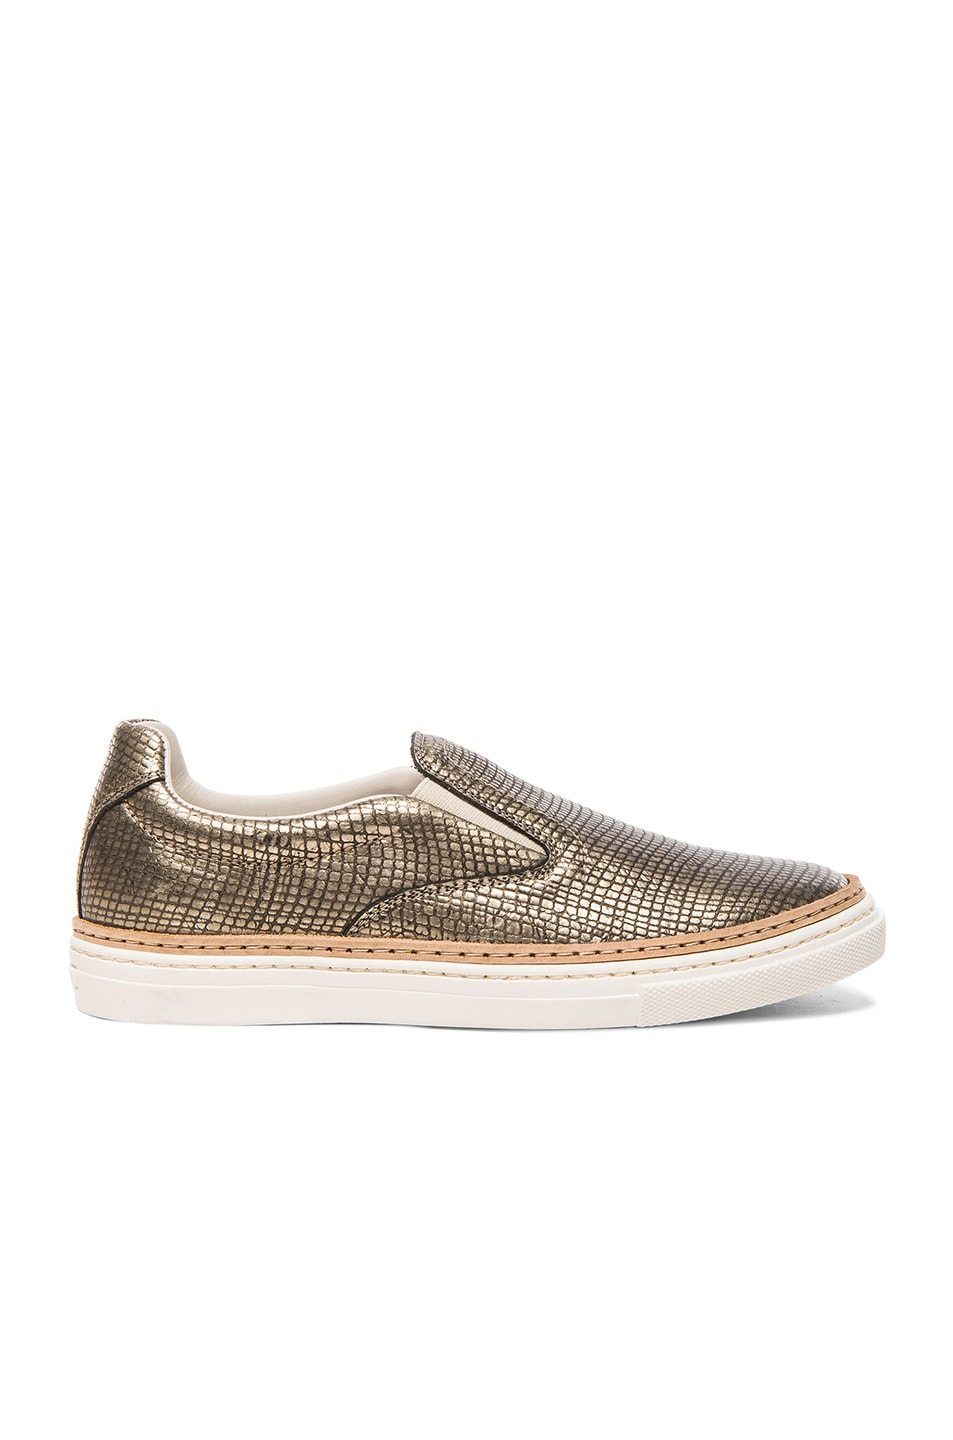 Image 1 of Maison Margiela Embossed Leather Slip-On Sneakers in Gold